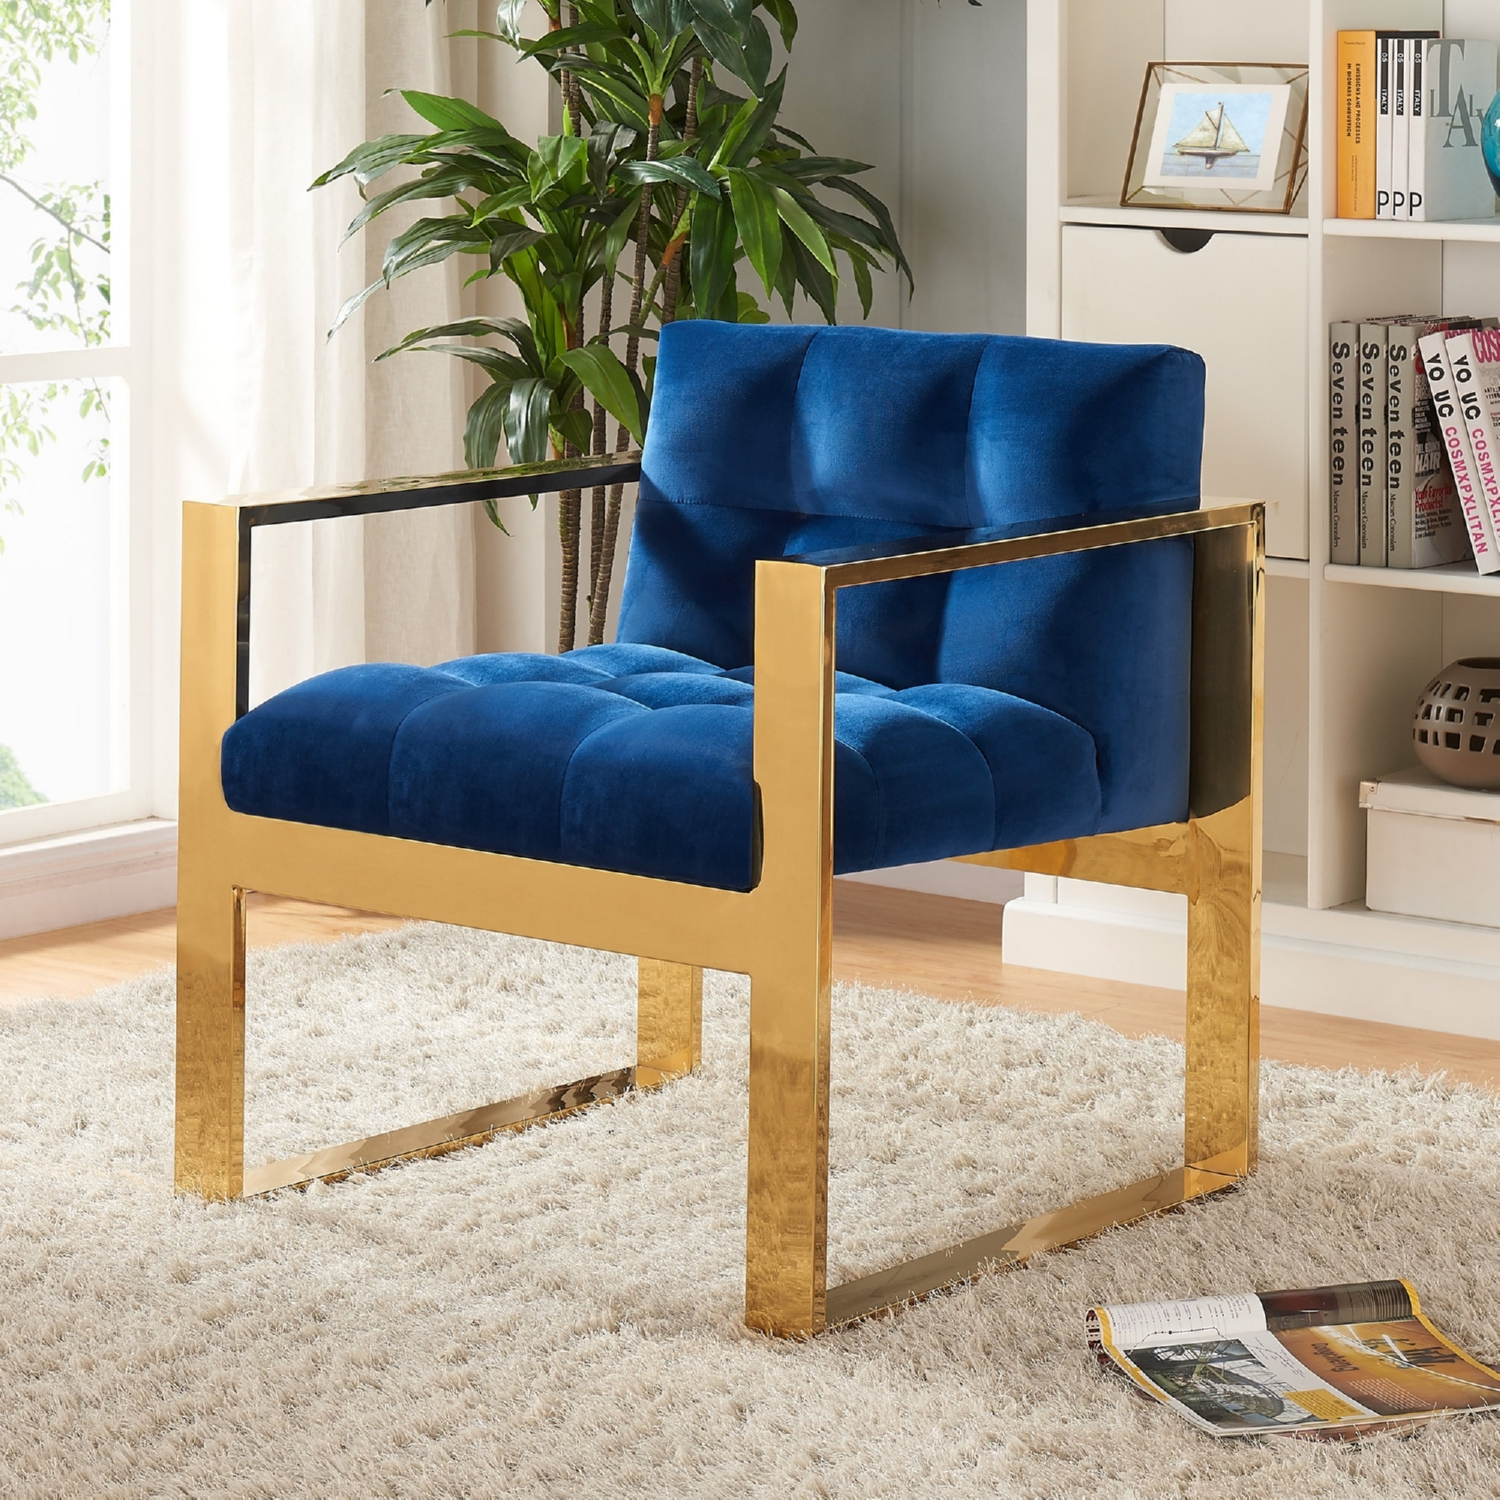 Meridian Furniture 514Navy Mia Navy Tufted Velvet Accent Chair on